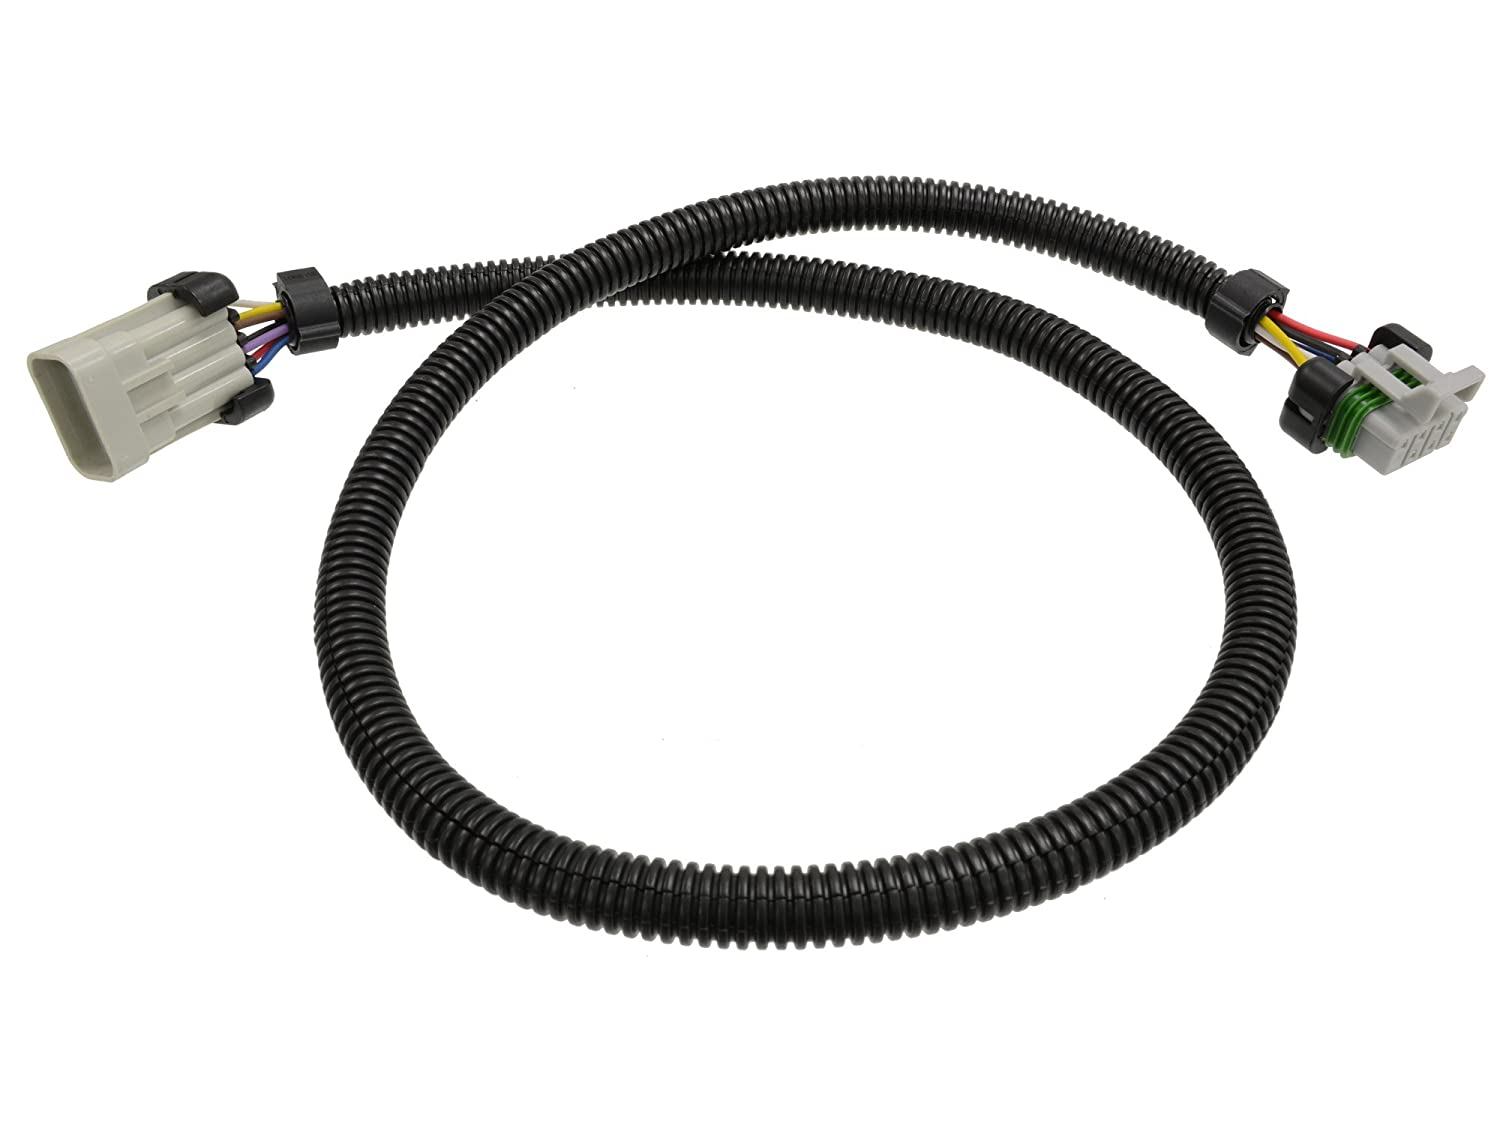 LS1 Coil Extension Harness Relocation 36' Michigan Motorsports 23100-01